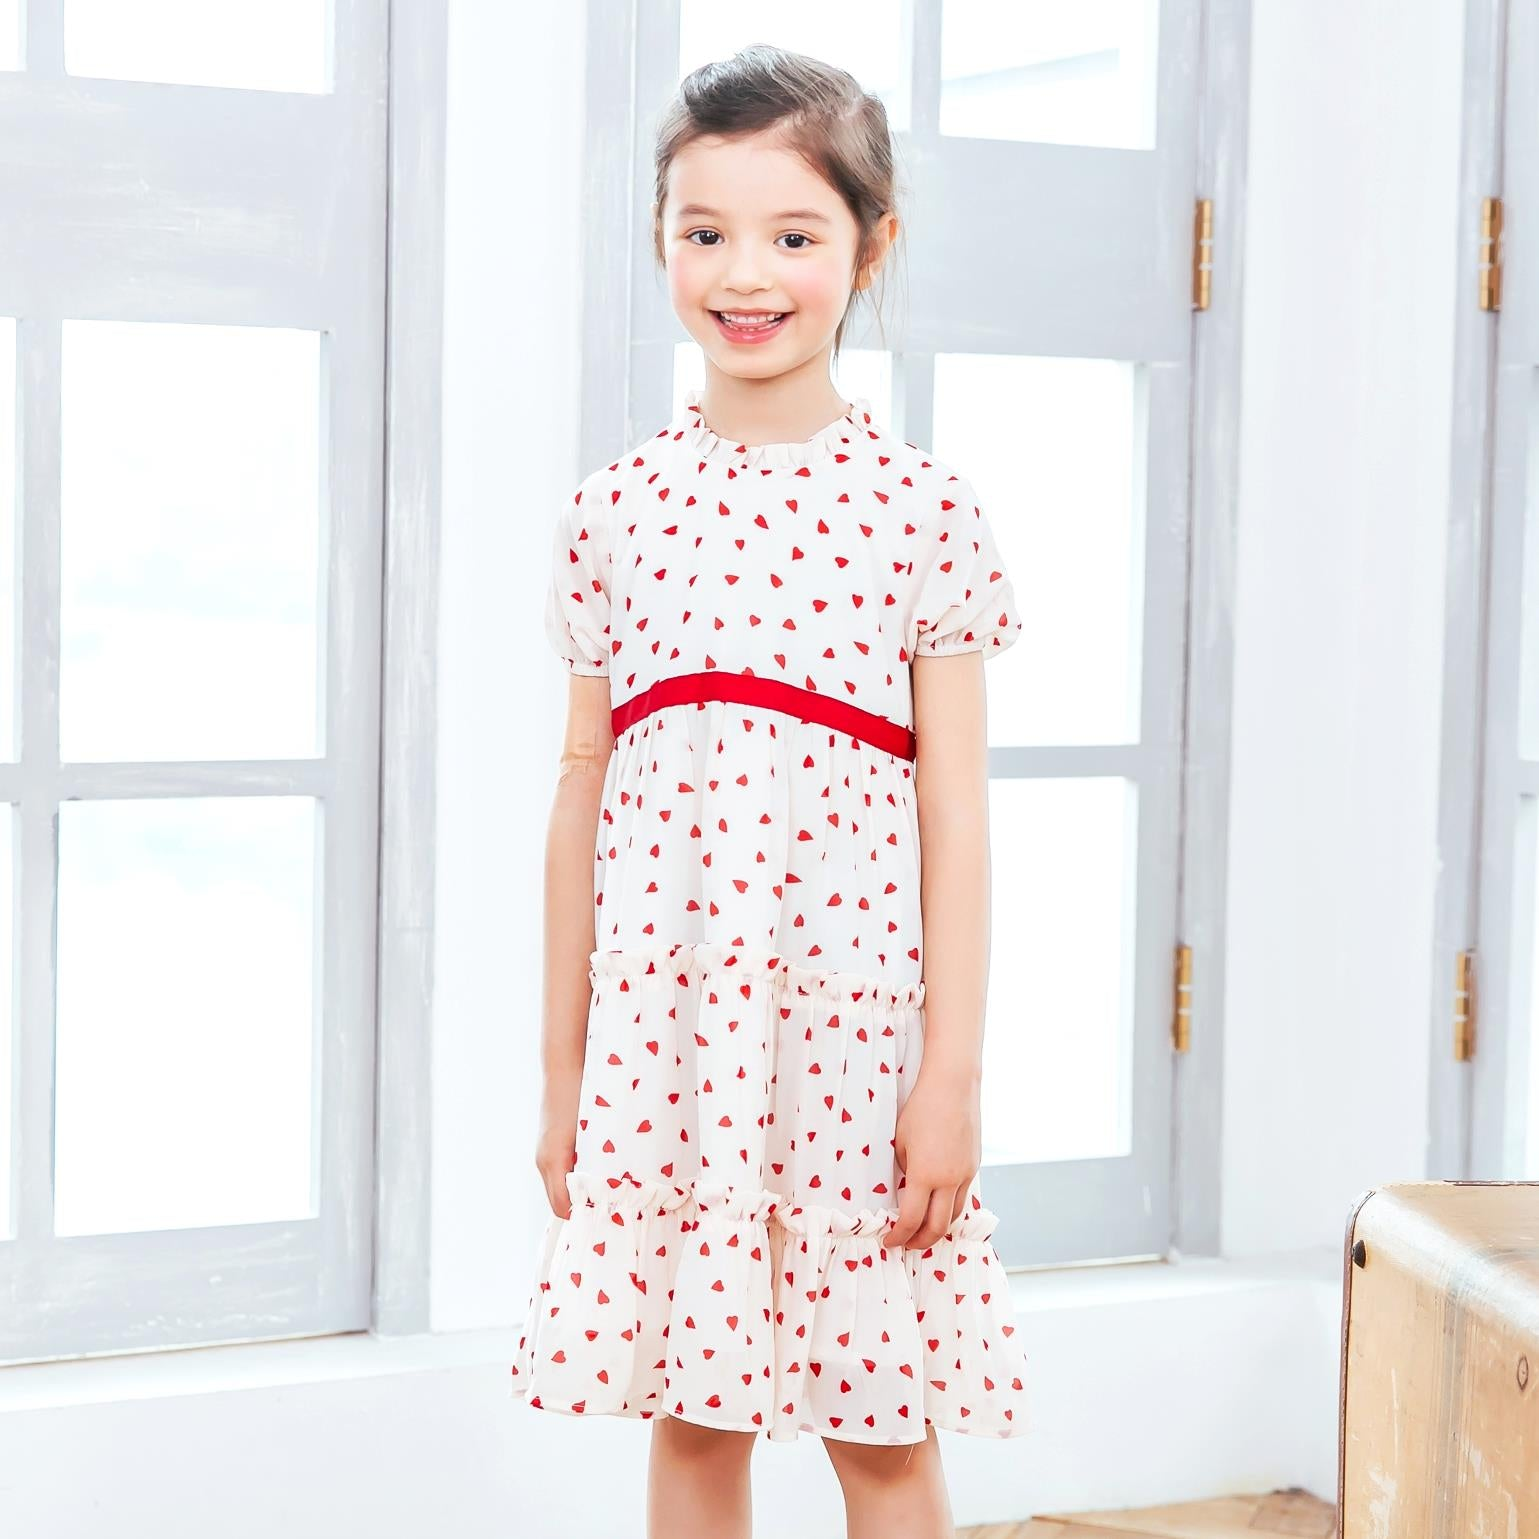 (Mommy & Me) Heart-shaped polka dot dress (set of 2)